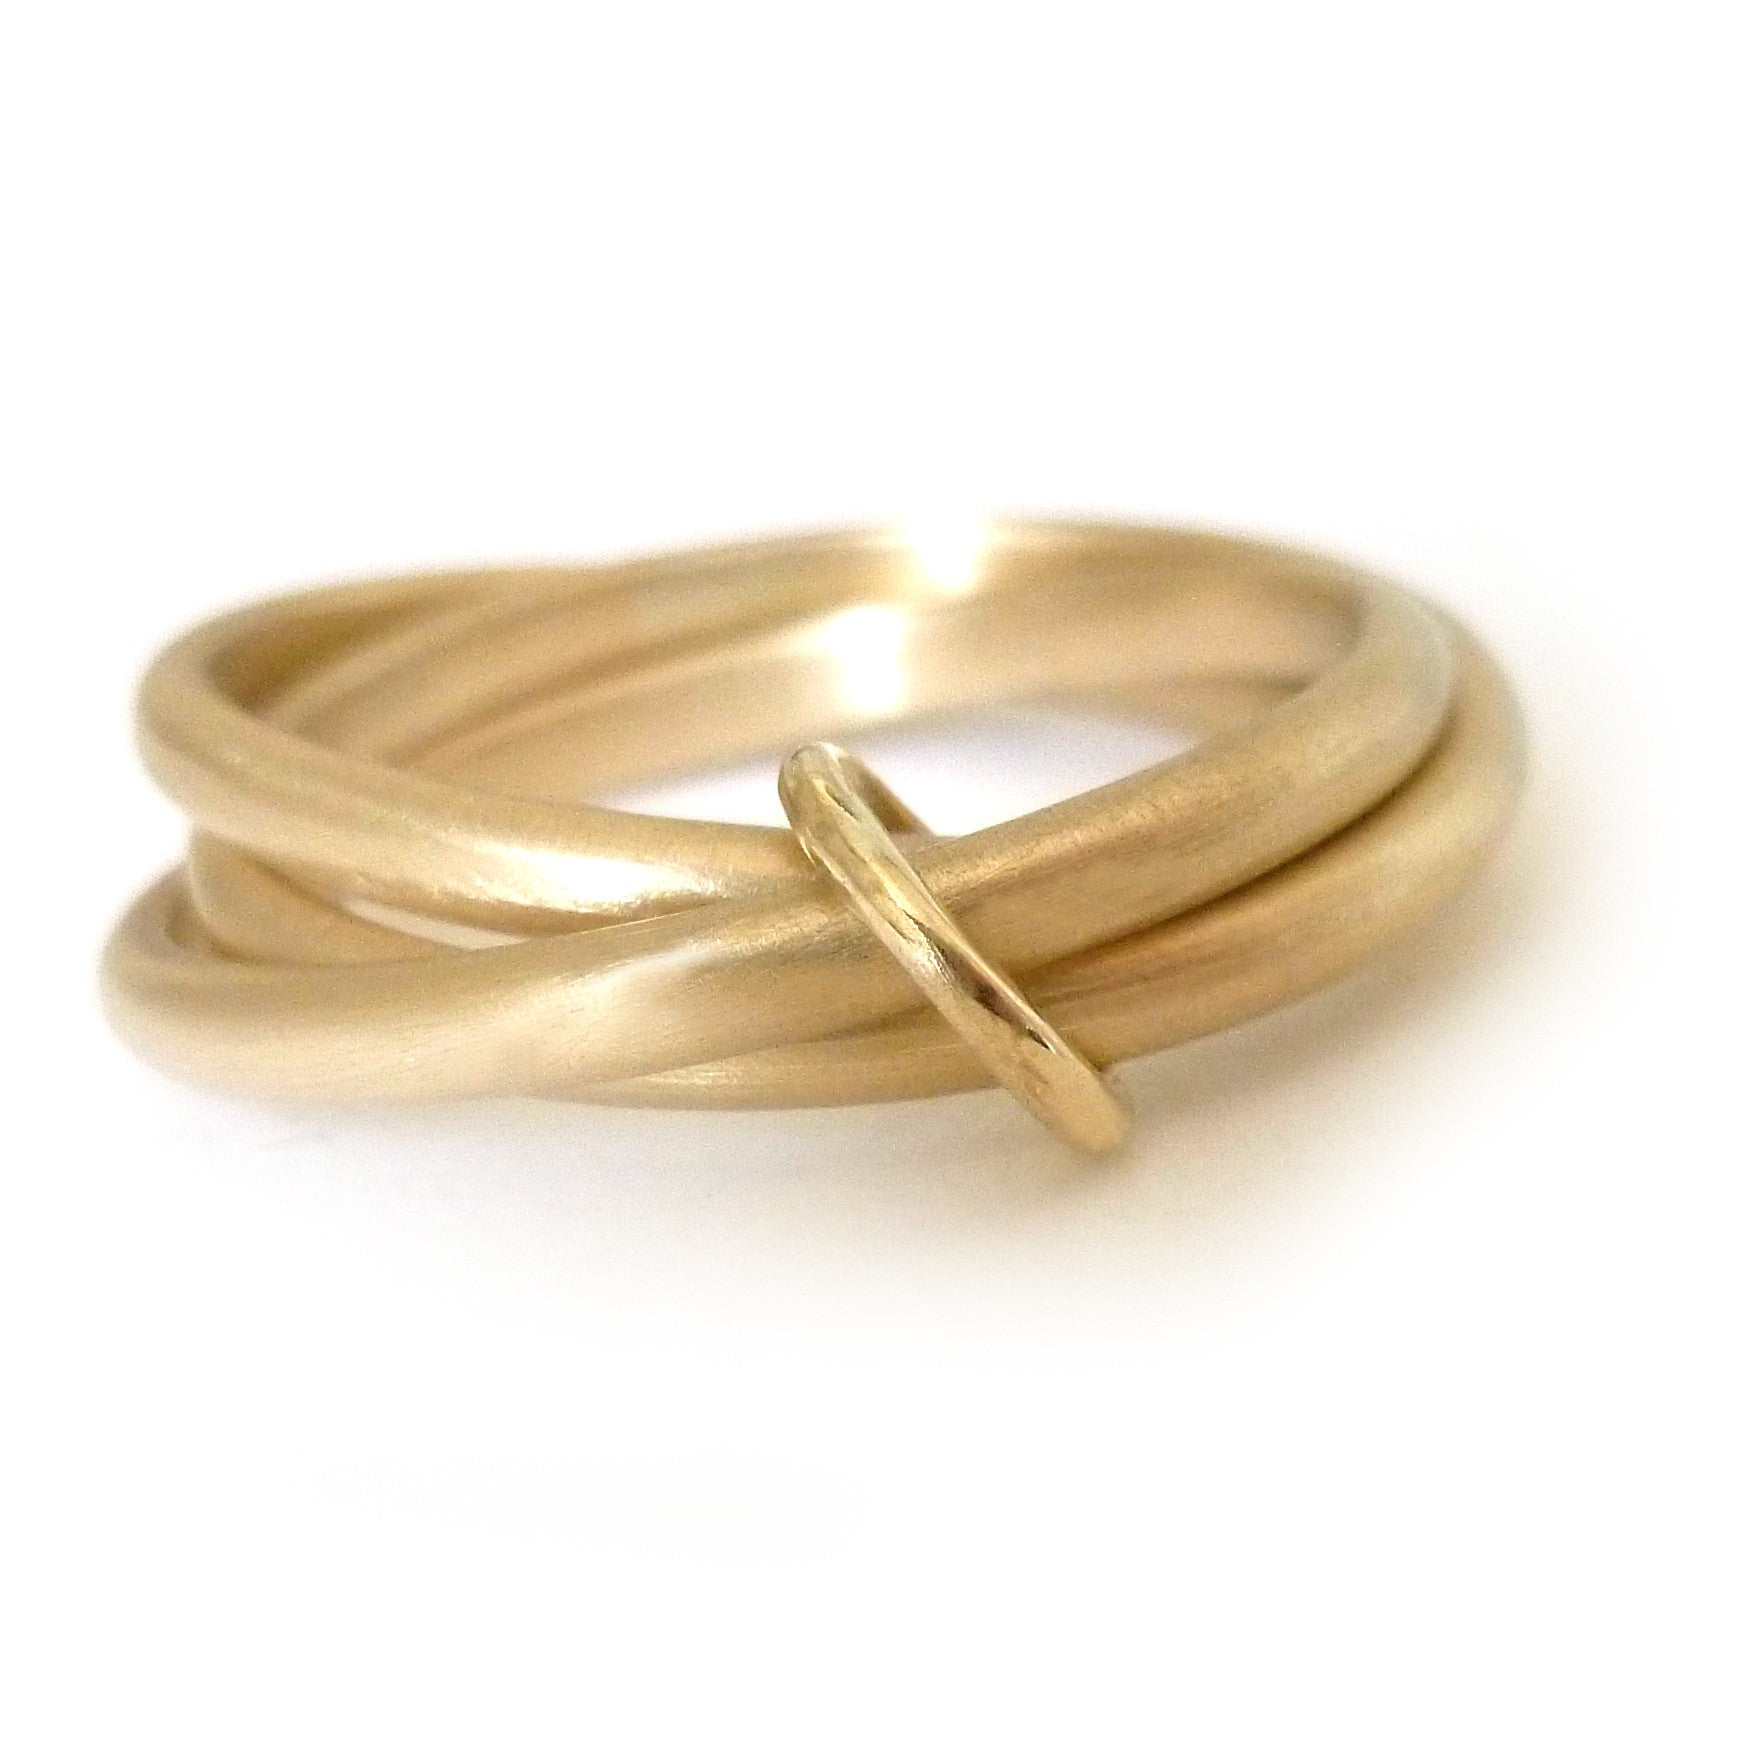 modern russian style wedding ring yellow gold.